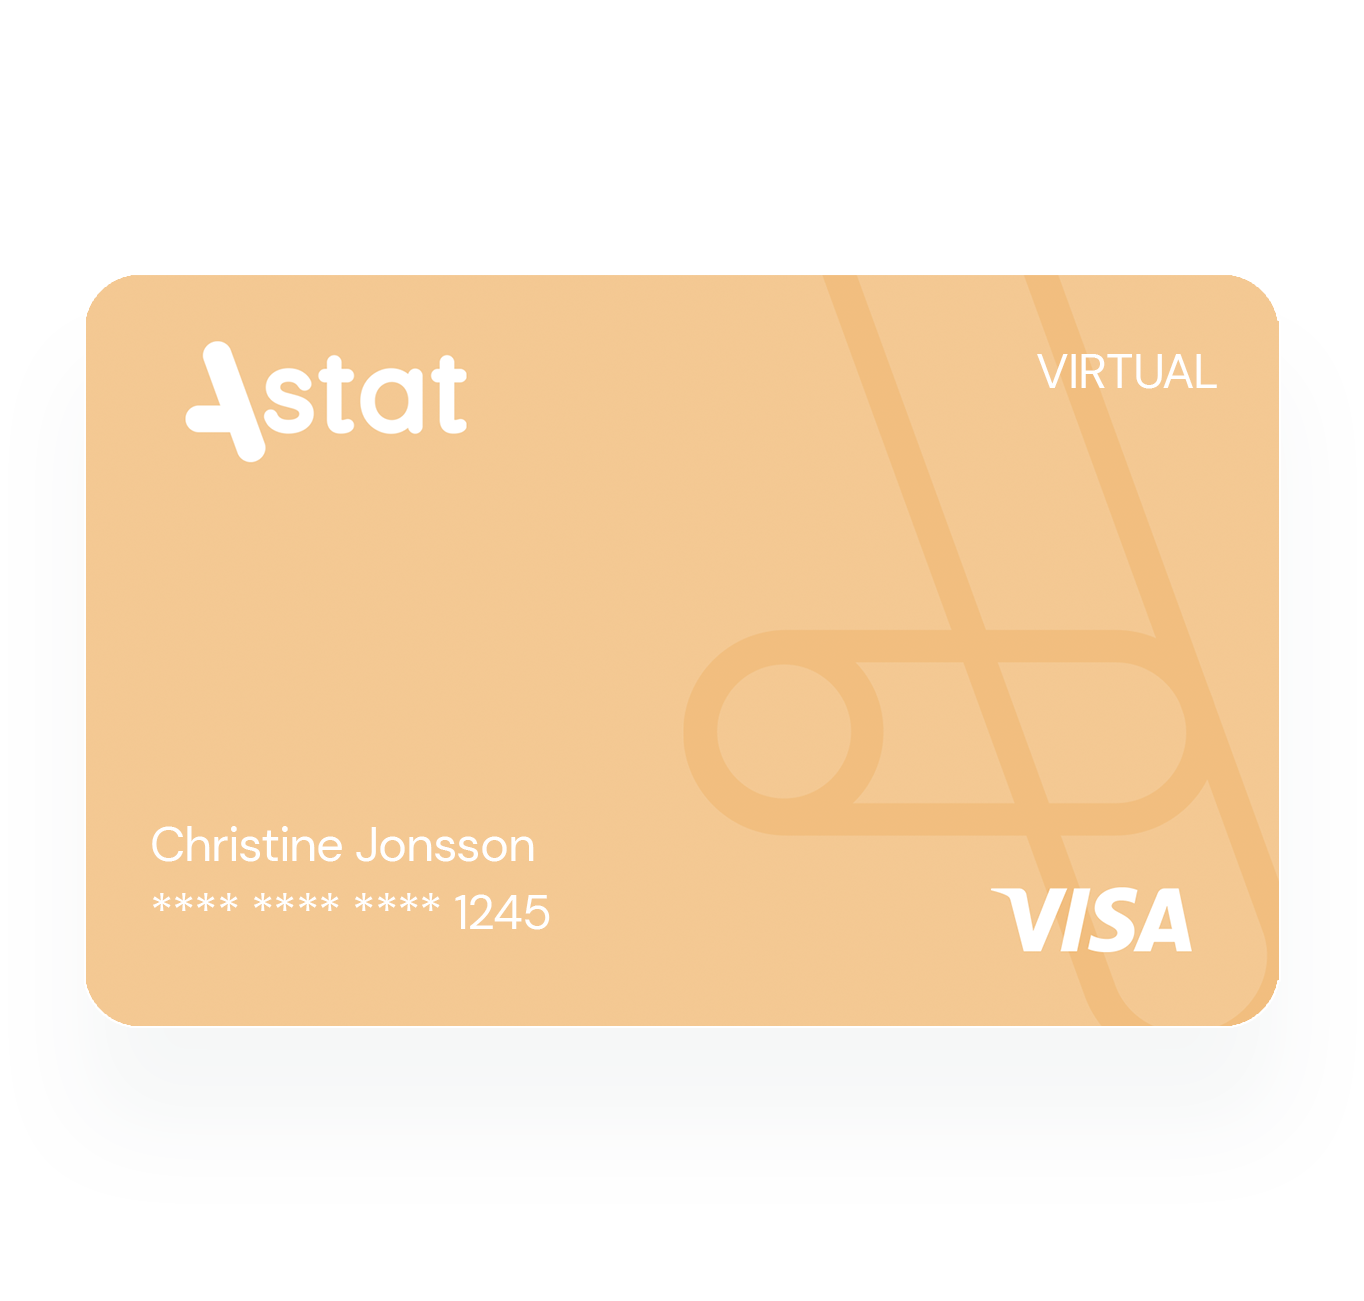 Frontal view of the Astat card